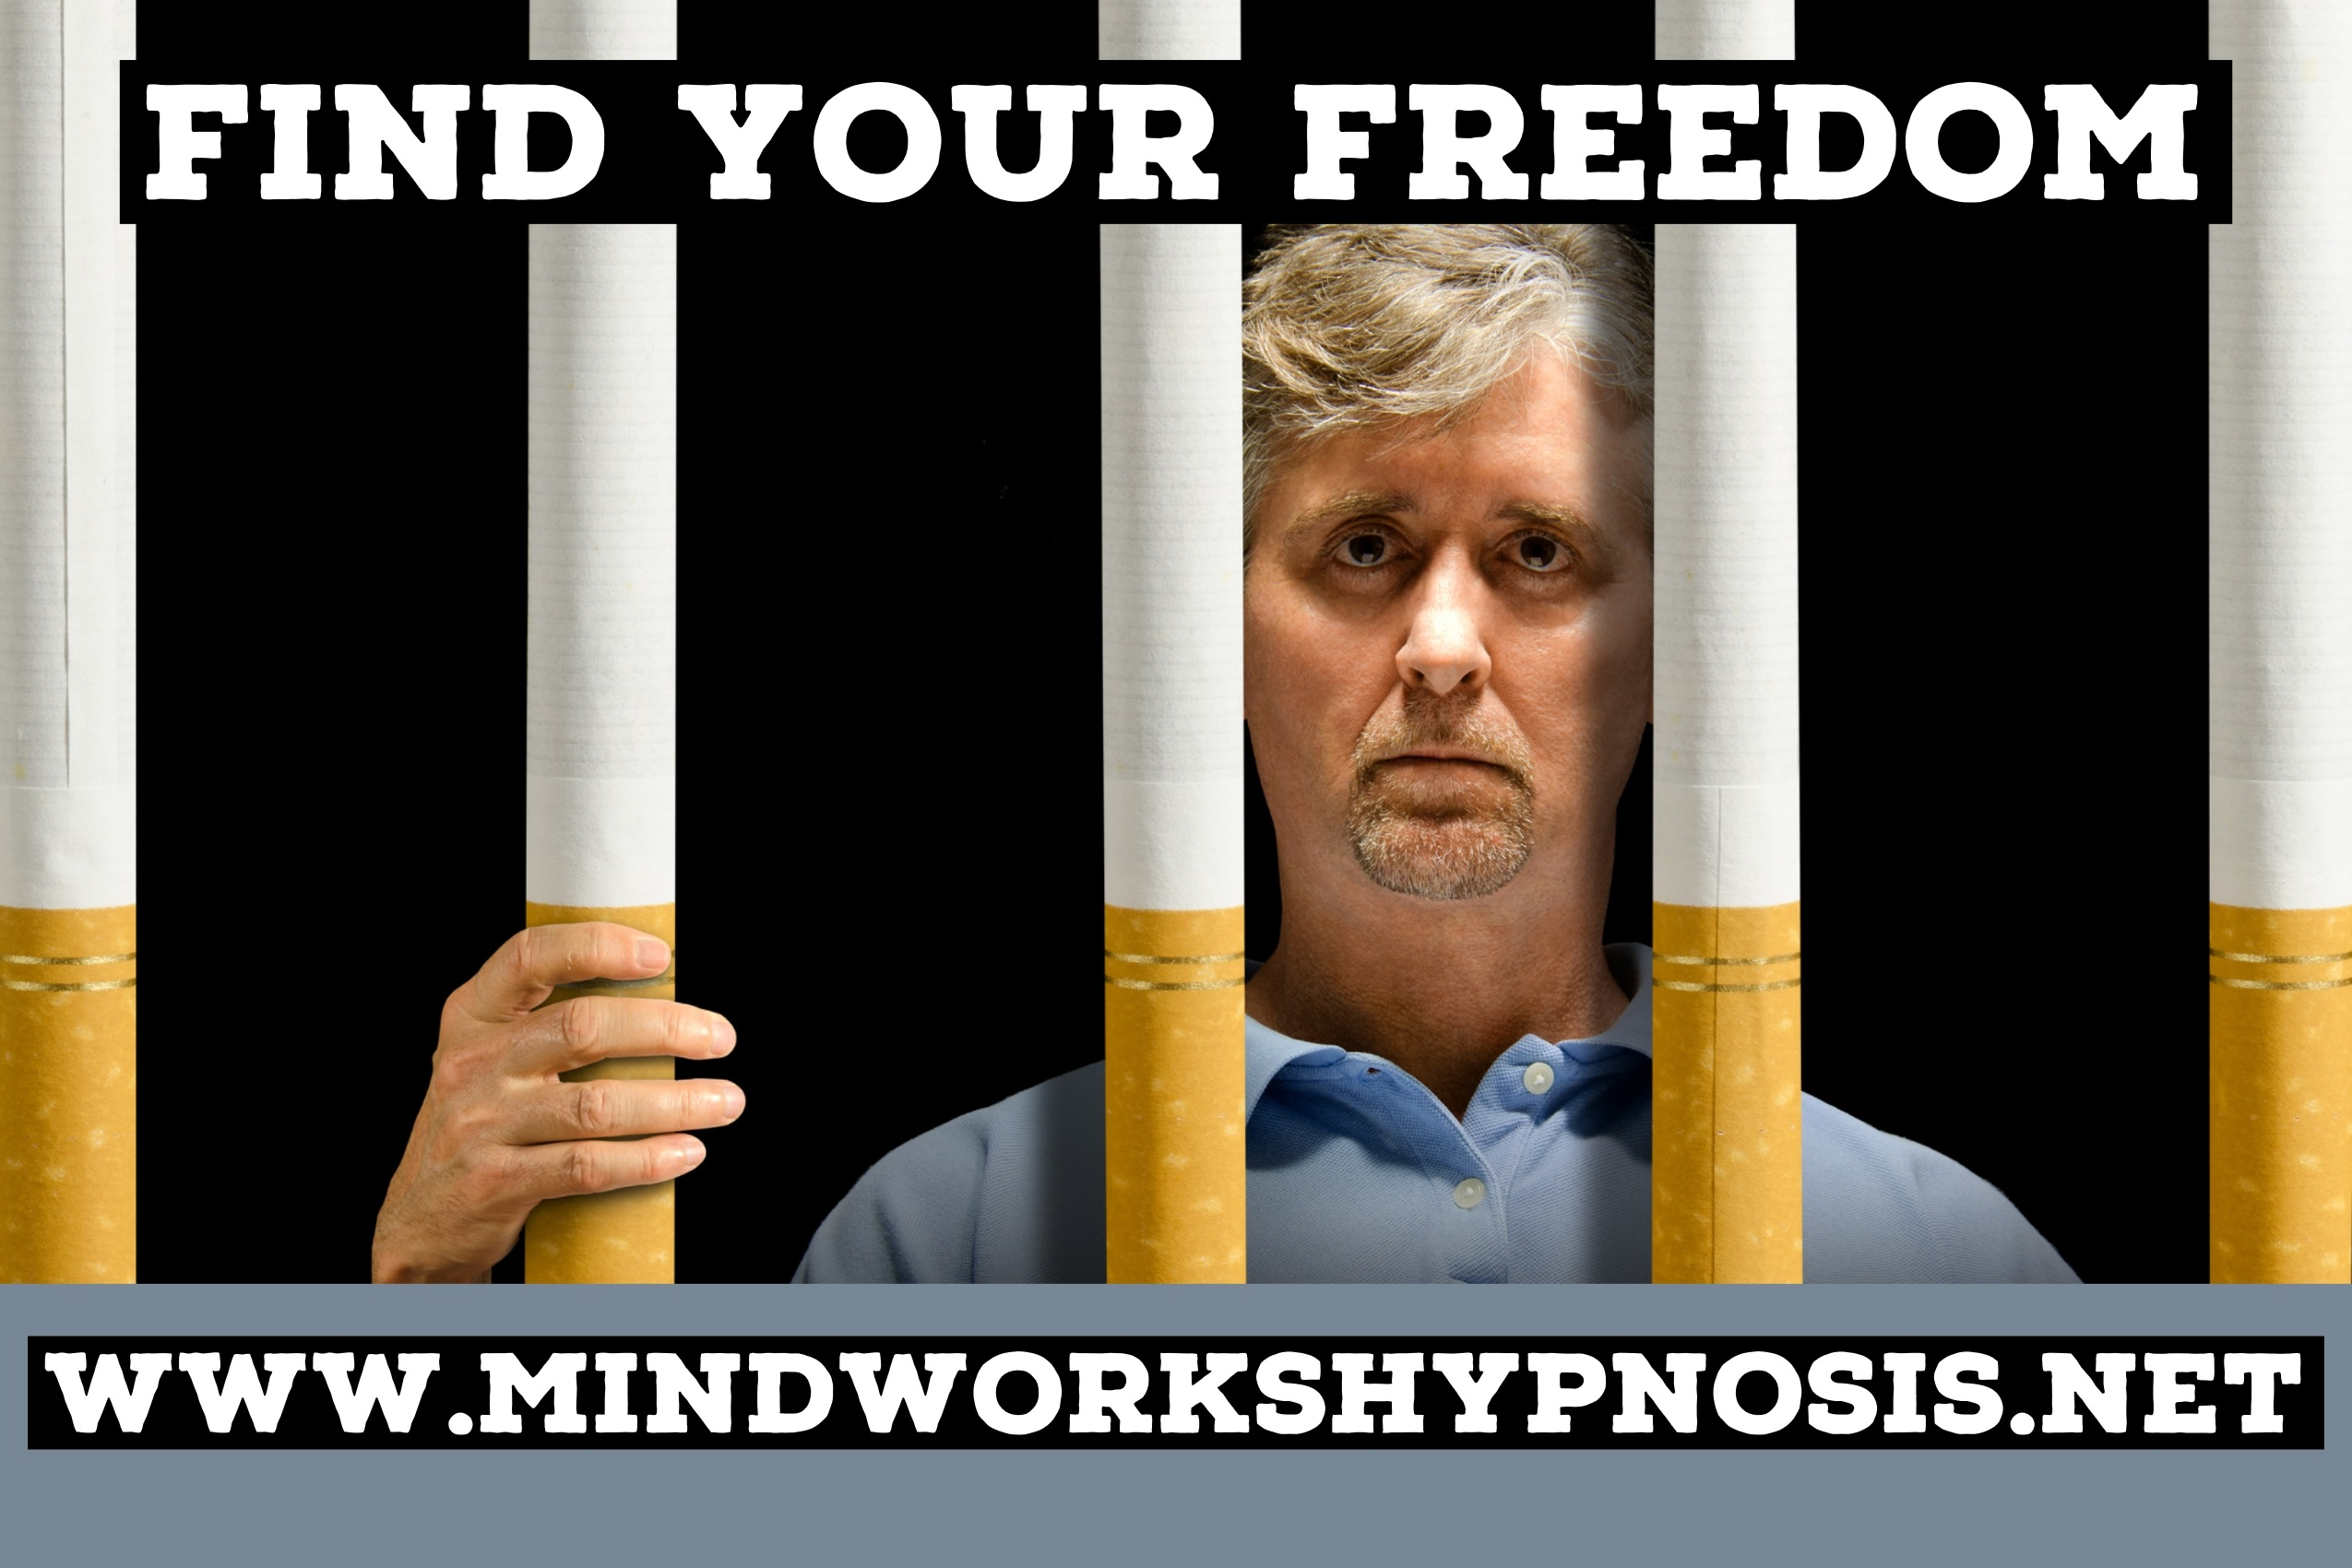 Find Your Freedom with Mindworks Hypnosis & NLP.